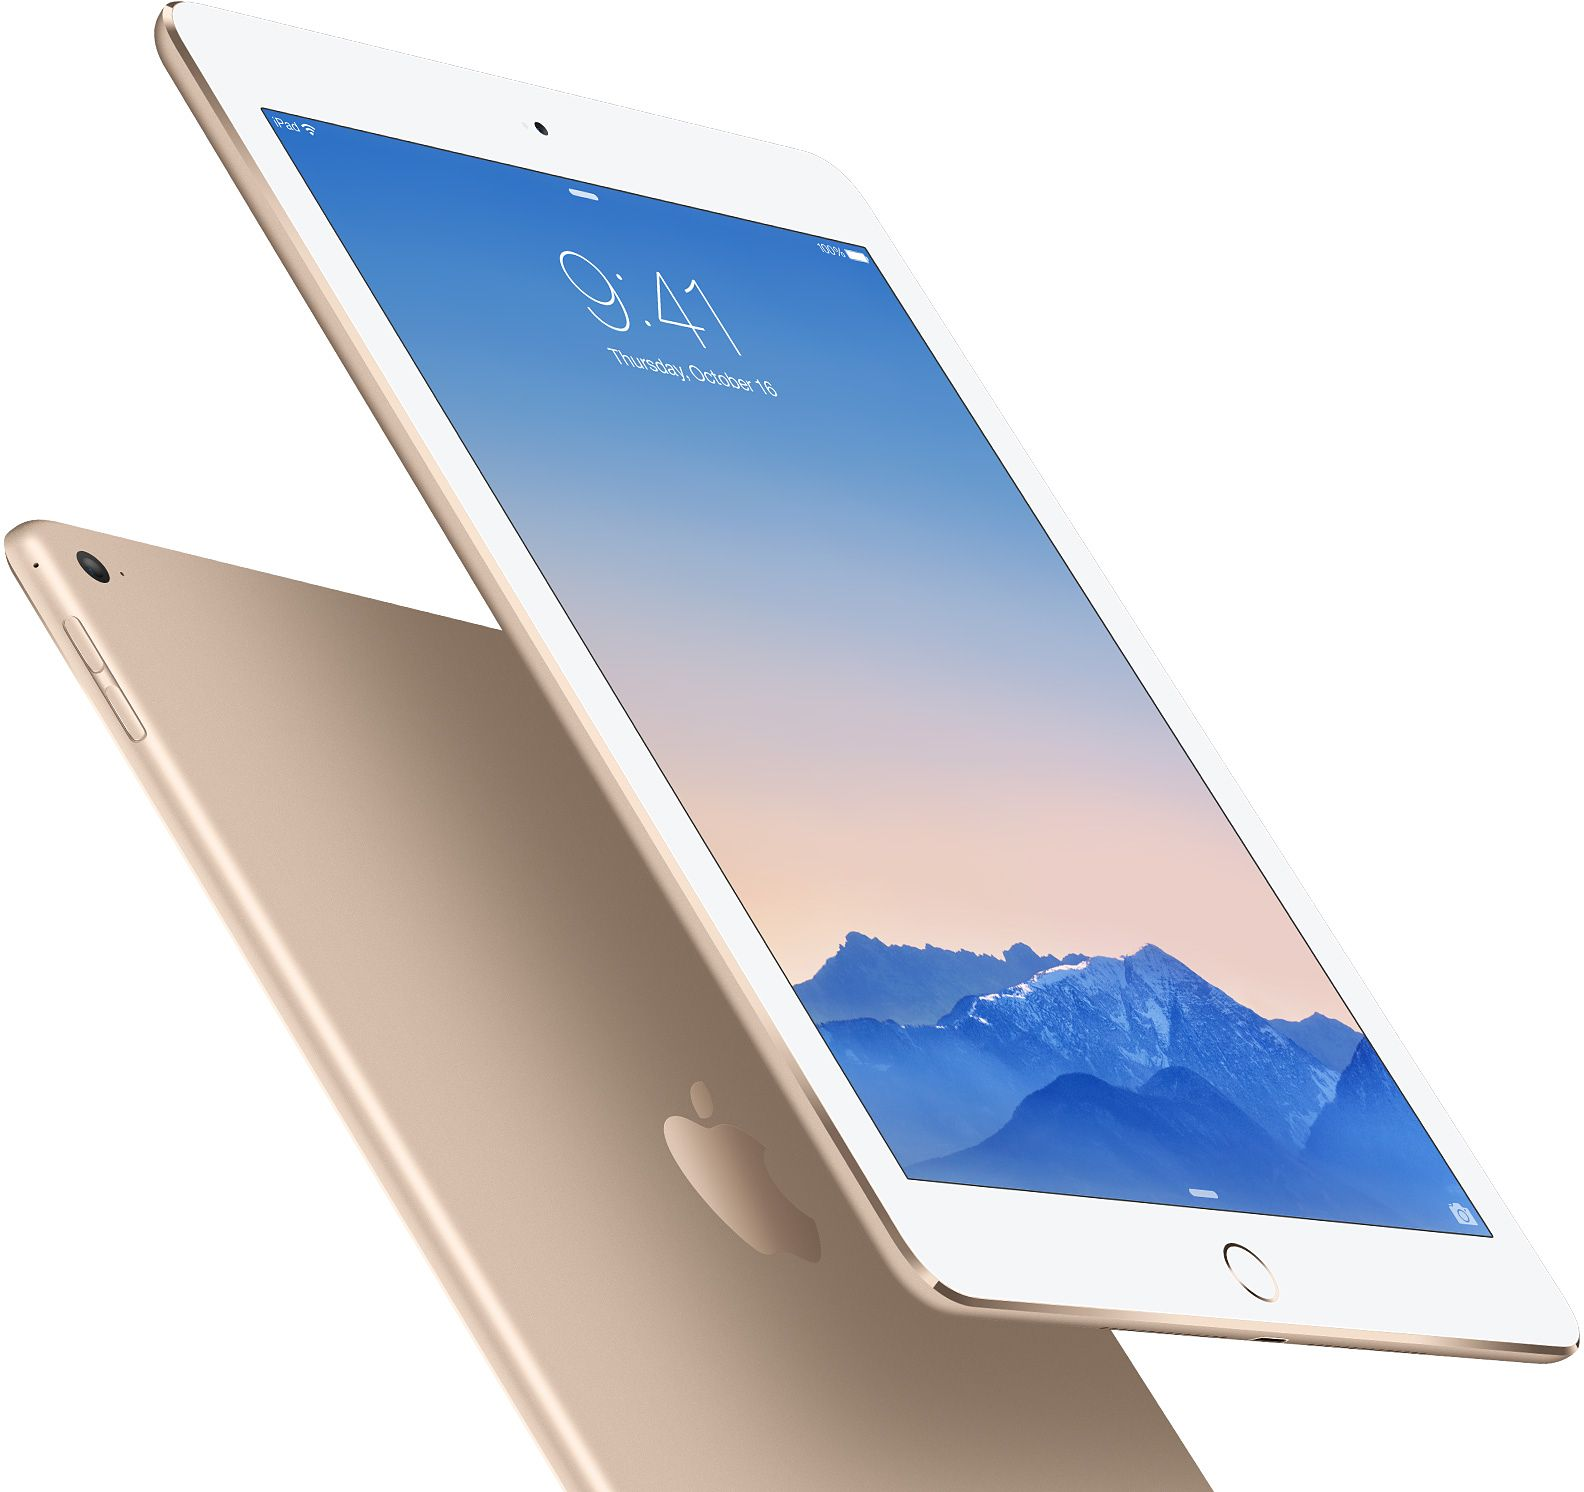 The Techknow Space is your iPad Air 2 repair centre in Toronto and Mississauga. Bring your 2nd Gen iPad Air for all repair services, such as screen replacement, charging port issues, and broken touchscreen glass.